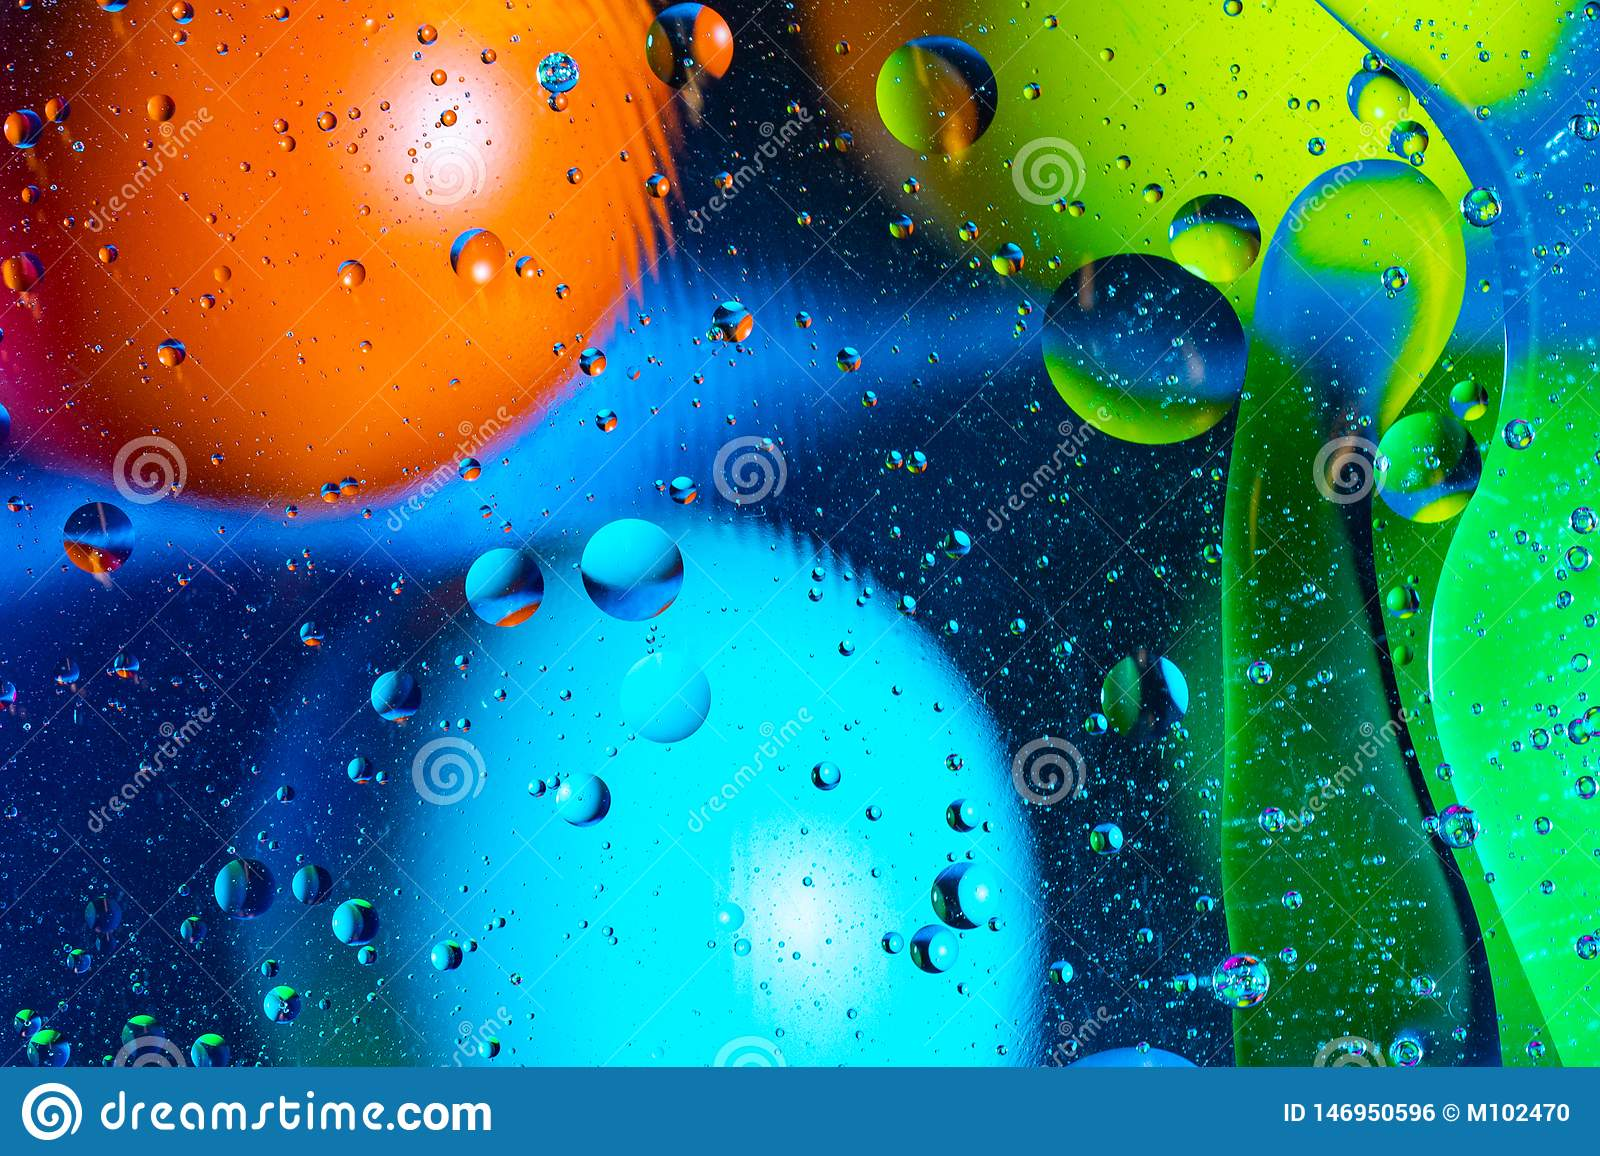 Mixing water and oil on a beautiful color abstract background gradient balls circles and ovals